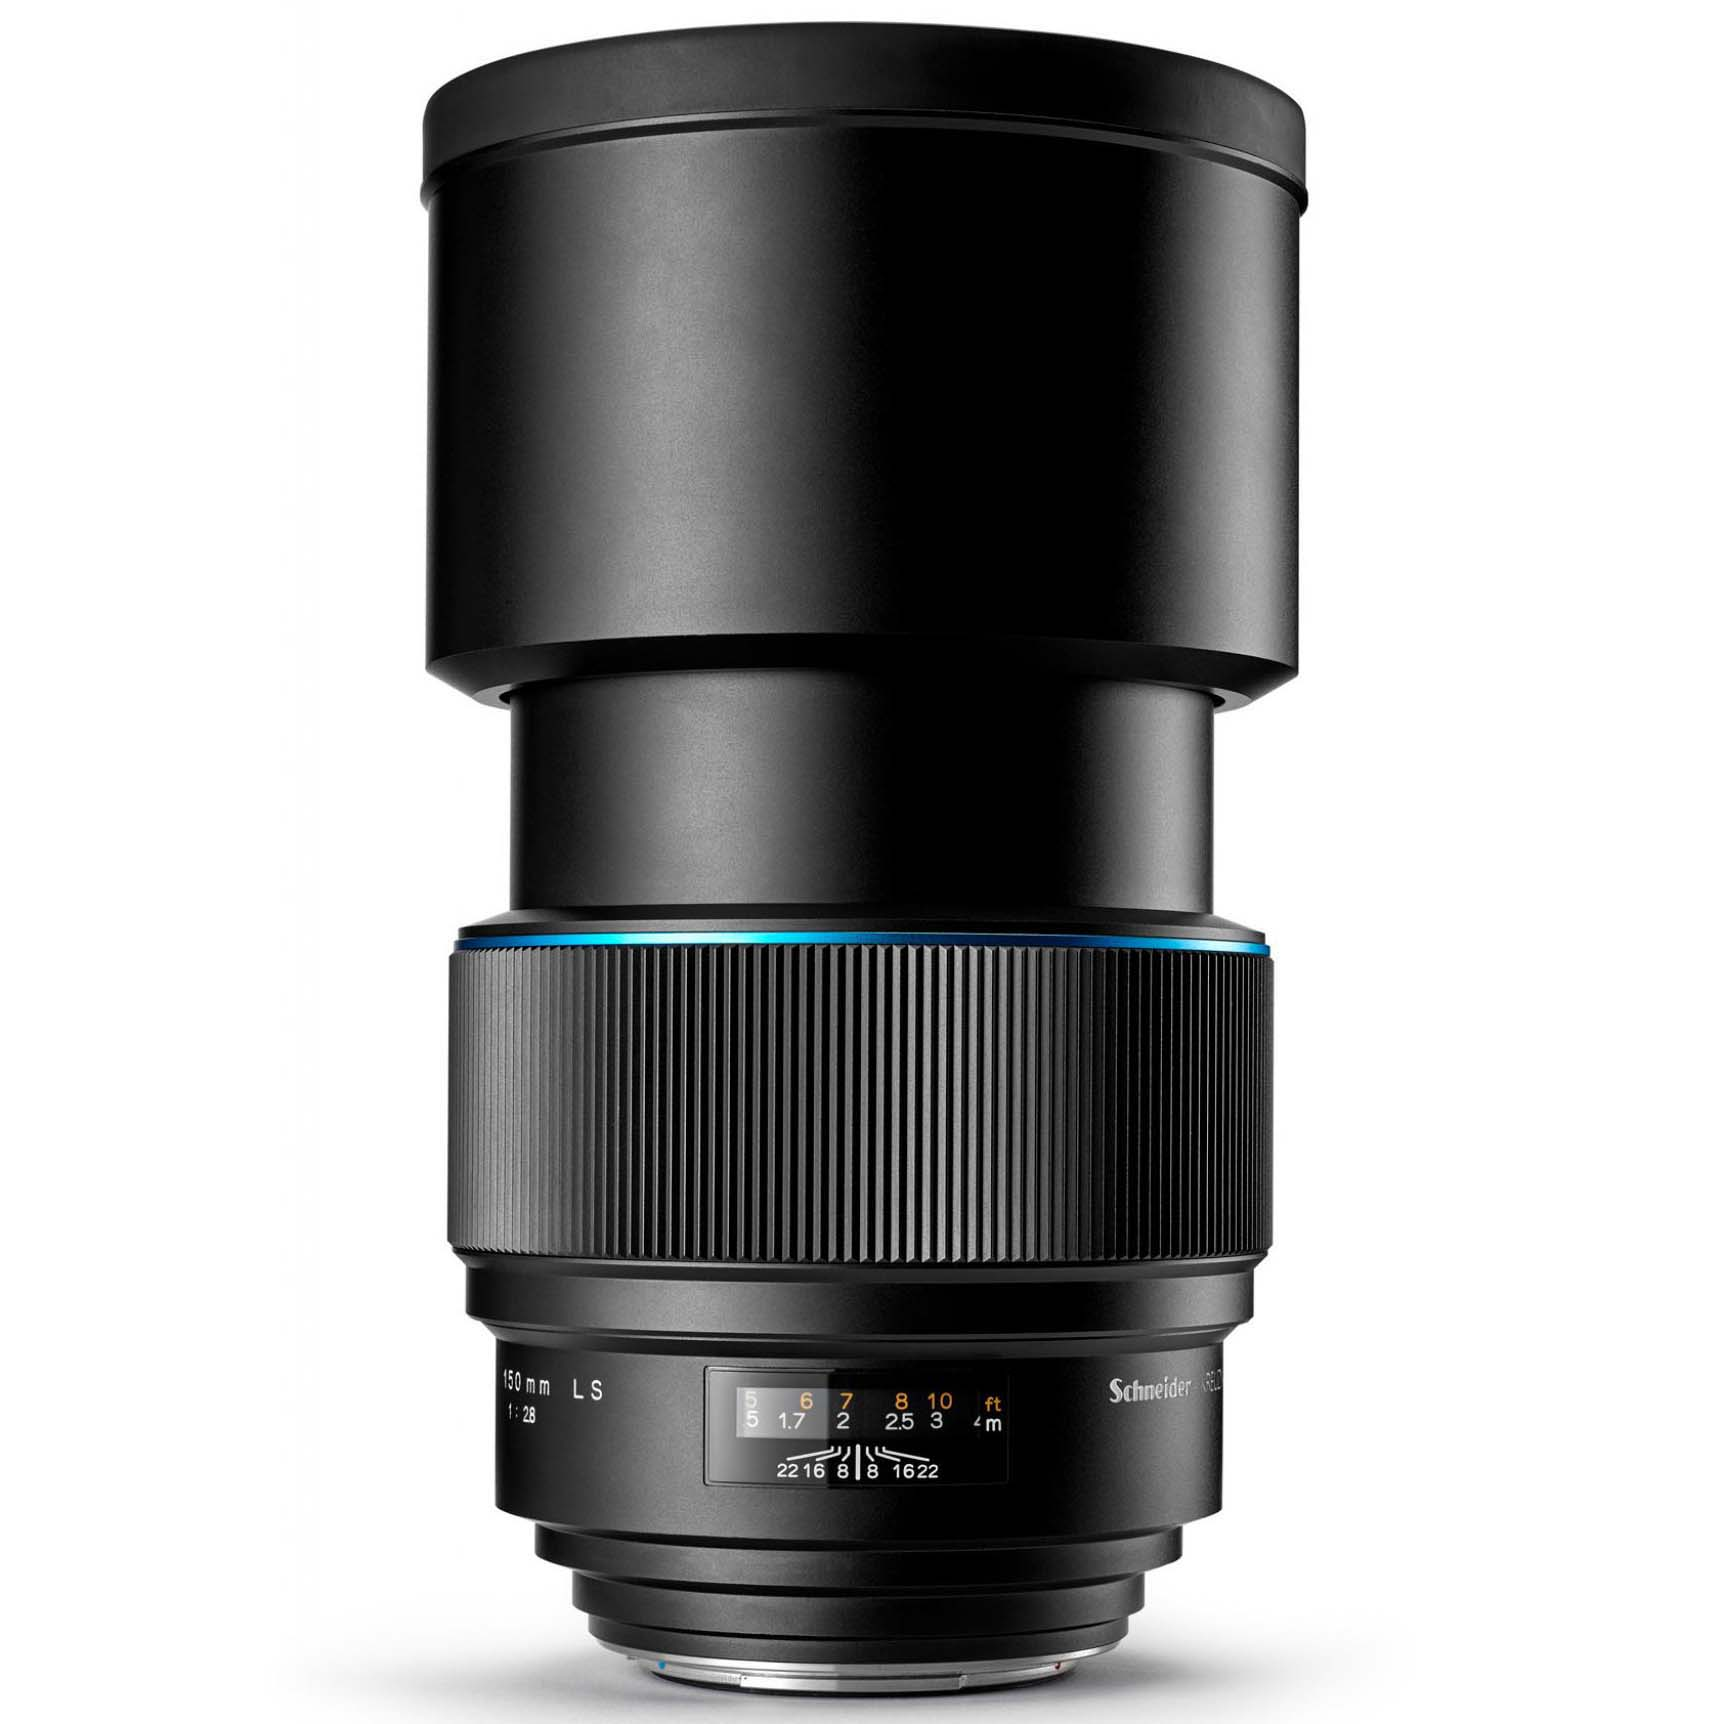 OBJETIVO PHASE ONE XF 150/3.5 LS BLUE RING